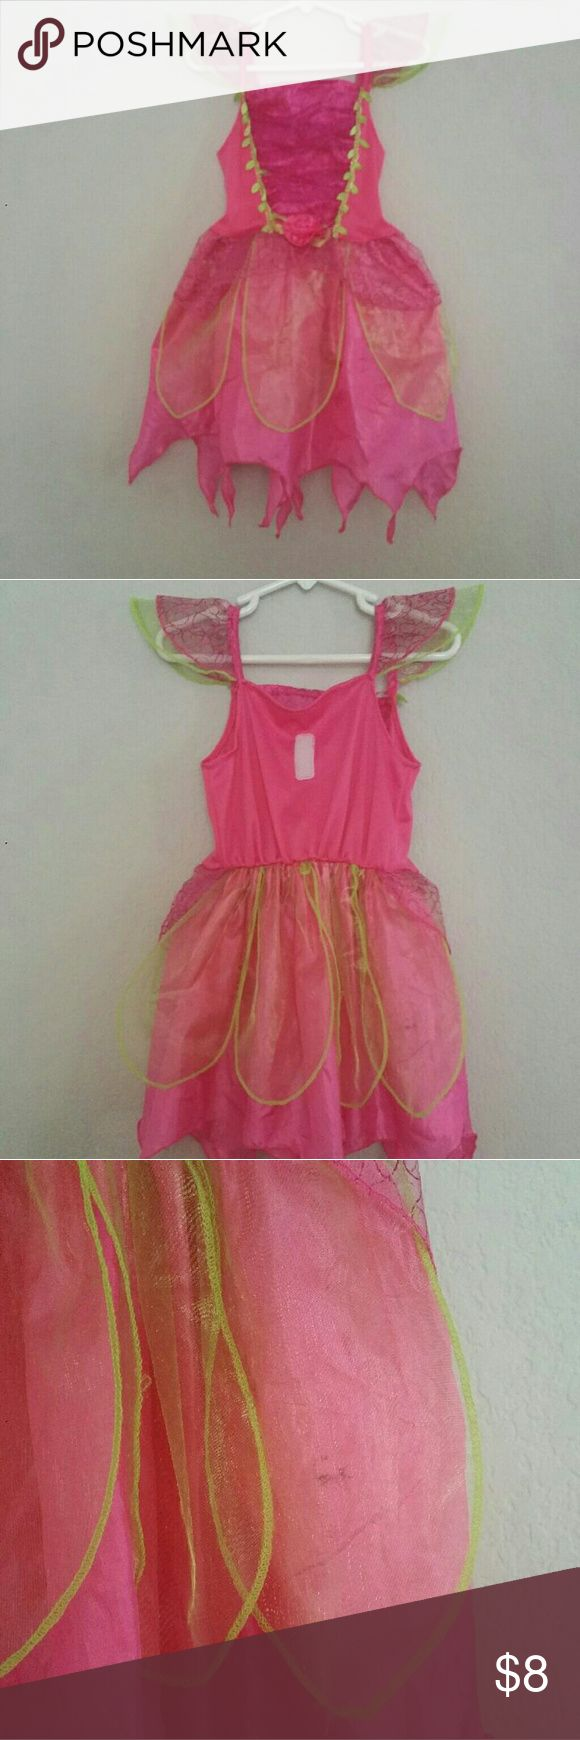 Pretty pink fairy princess Great pre loved condition. Has velcro on the back to attach wings. There is a small black mark on the back of the skirt. It's under the petal material and honestly I just noticed it while taking photos. Costumes